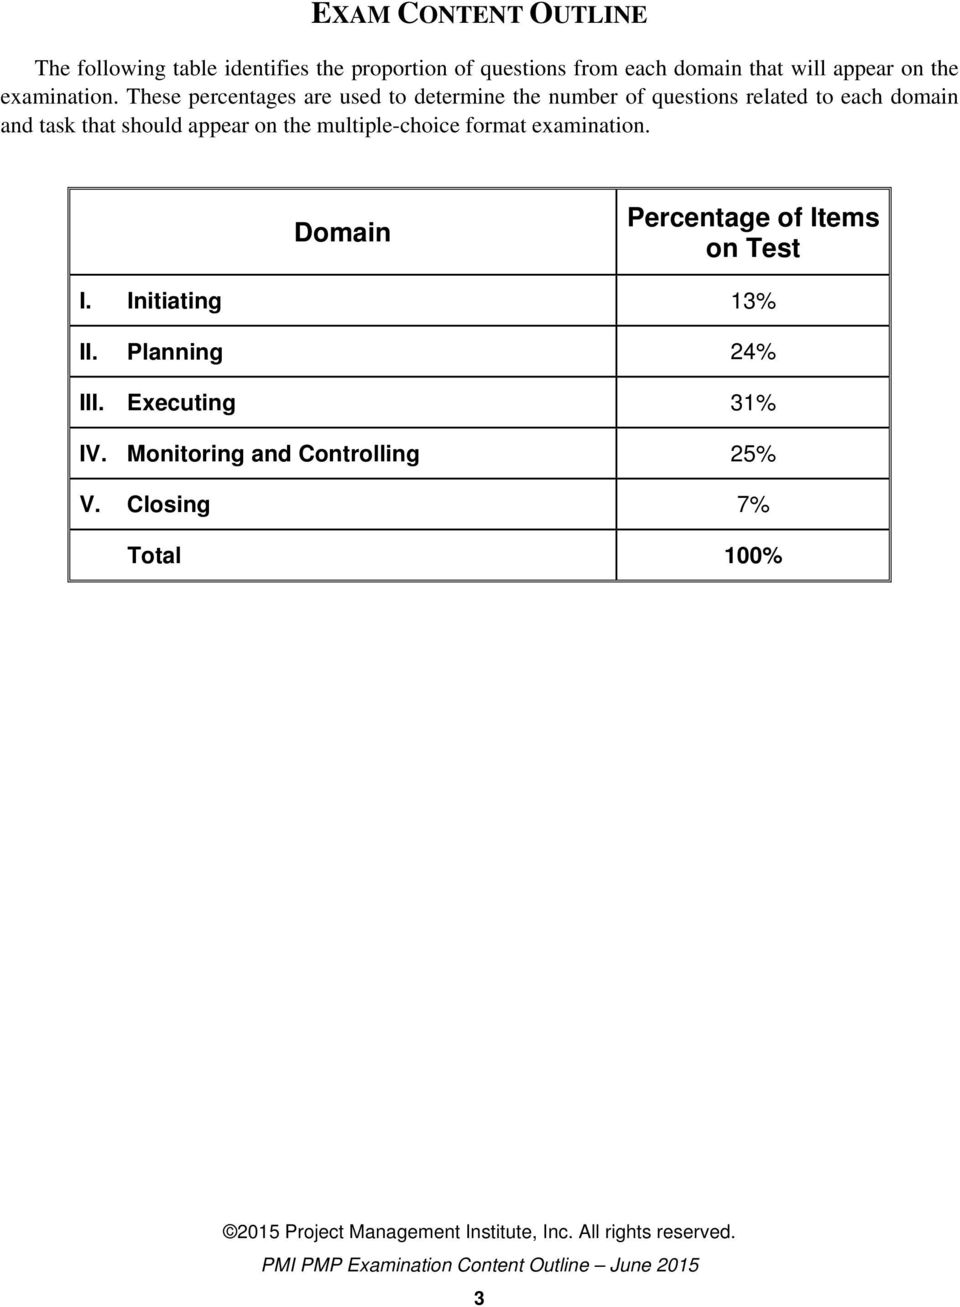 These percentages are used to determine the number of questions related to each domain and task that should